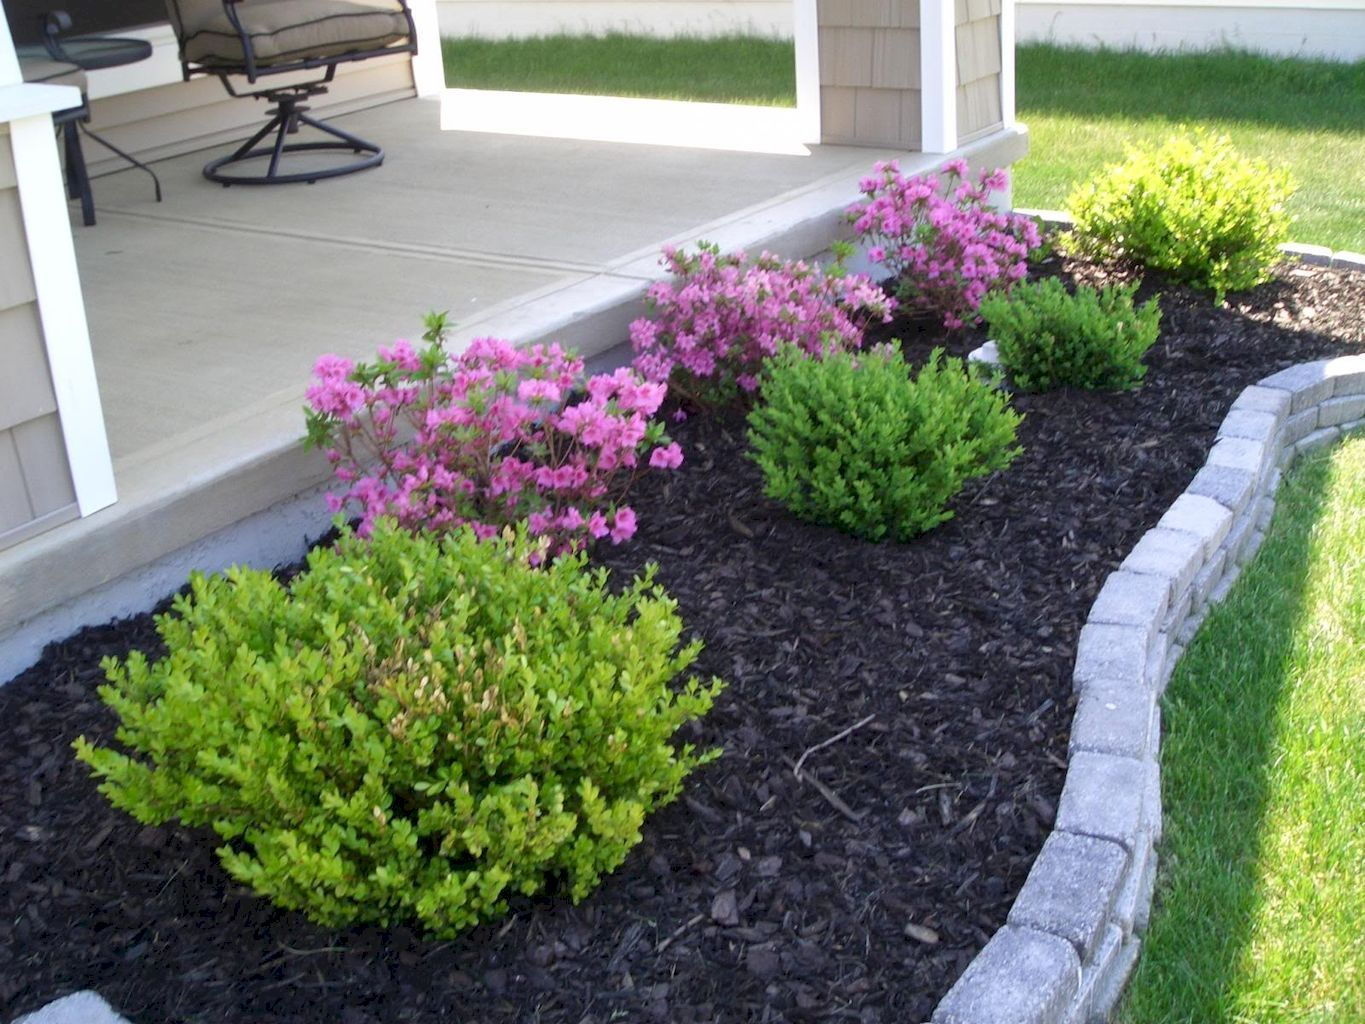 Awesome 60 Modern Low Maintenance Front Yard Landscaping Ideas Front Landscaping Lowmainten Small Front Yard Landscaping Porch Landscaping Easy Landscaping